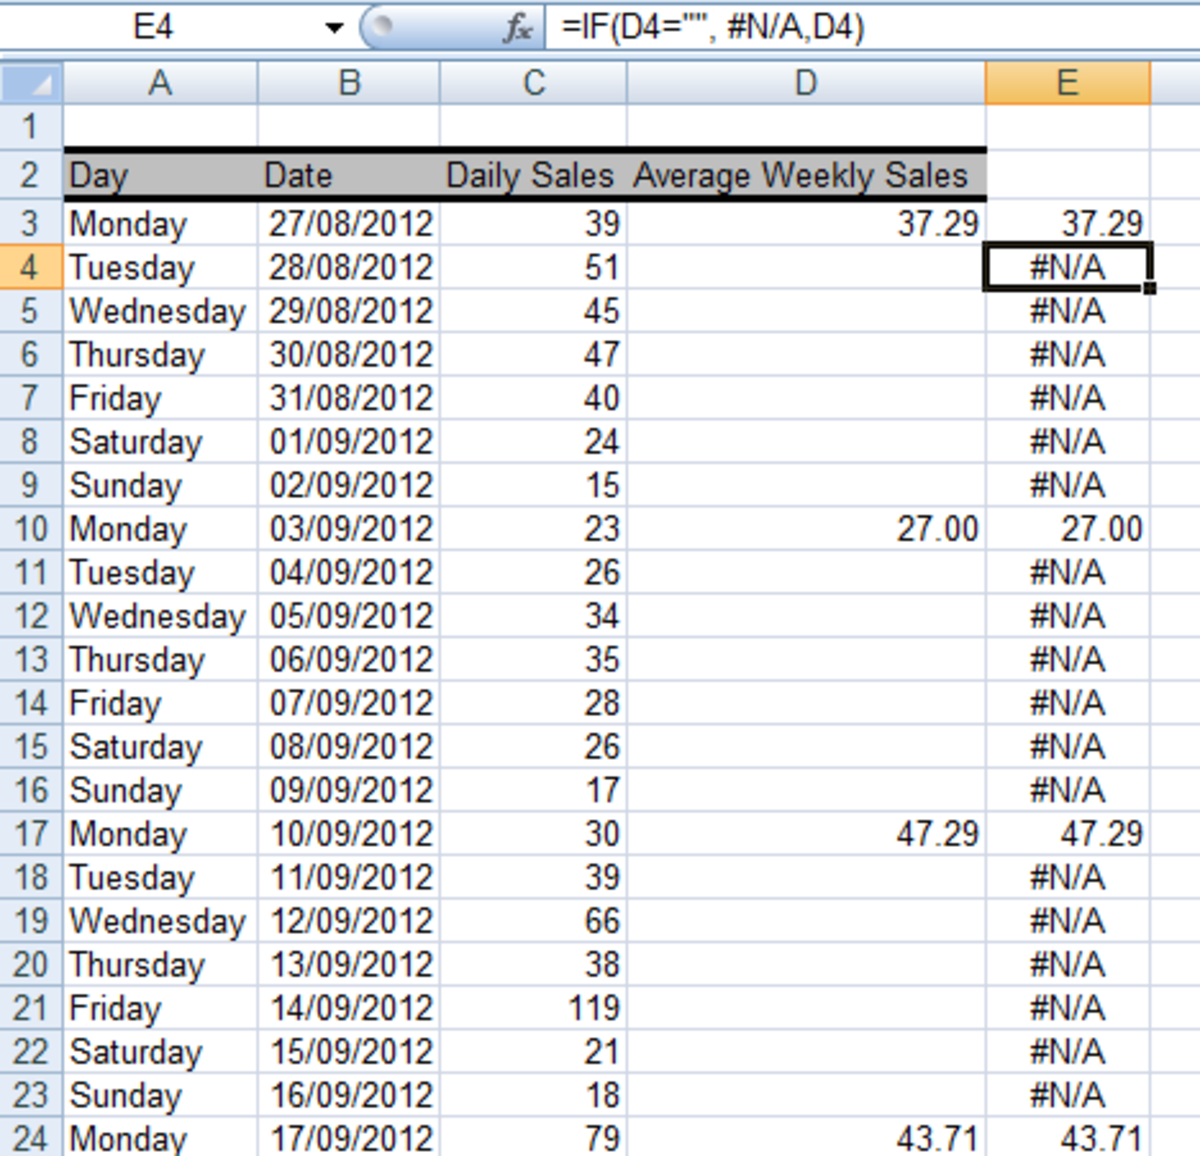 Ediblewildsus  Stunning How To Get Excel  And  To Ignore Empty Cells In A Chart Or  With Marvelous Using The If Function In A Formula To Convert Empty Cells To Na With Astounding How To Enable Macro In Excel Also Drop List In Excel In Addition Excel In Cell And Convert Access To Excel As Well As Workbook In Excel Additionally Percentage Increase In Excel From Turbofuturecom With Ediblewildsus  Marvelous How To Get Excel  And  To Ignore Empty Cells In A Chart Or  With Astounding Using The If Function In A Formula To Convert Empty Cells To Na And Stunning How To Enable Macro In Excel Also Drop List In Excel In Addition Excel In Cell From Turbofuturecom